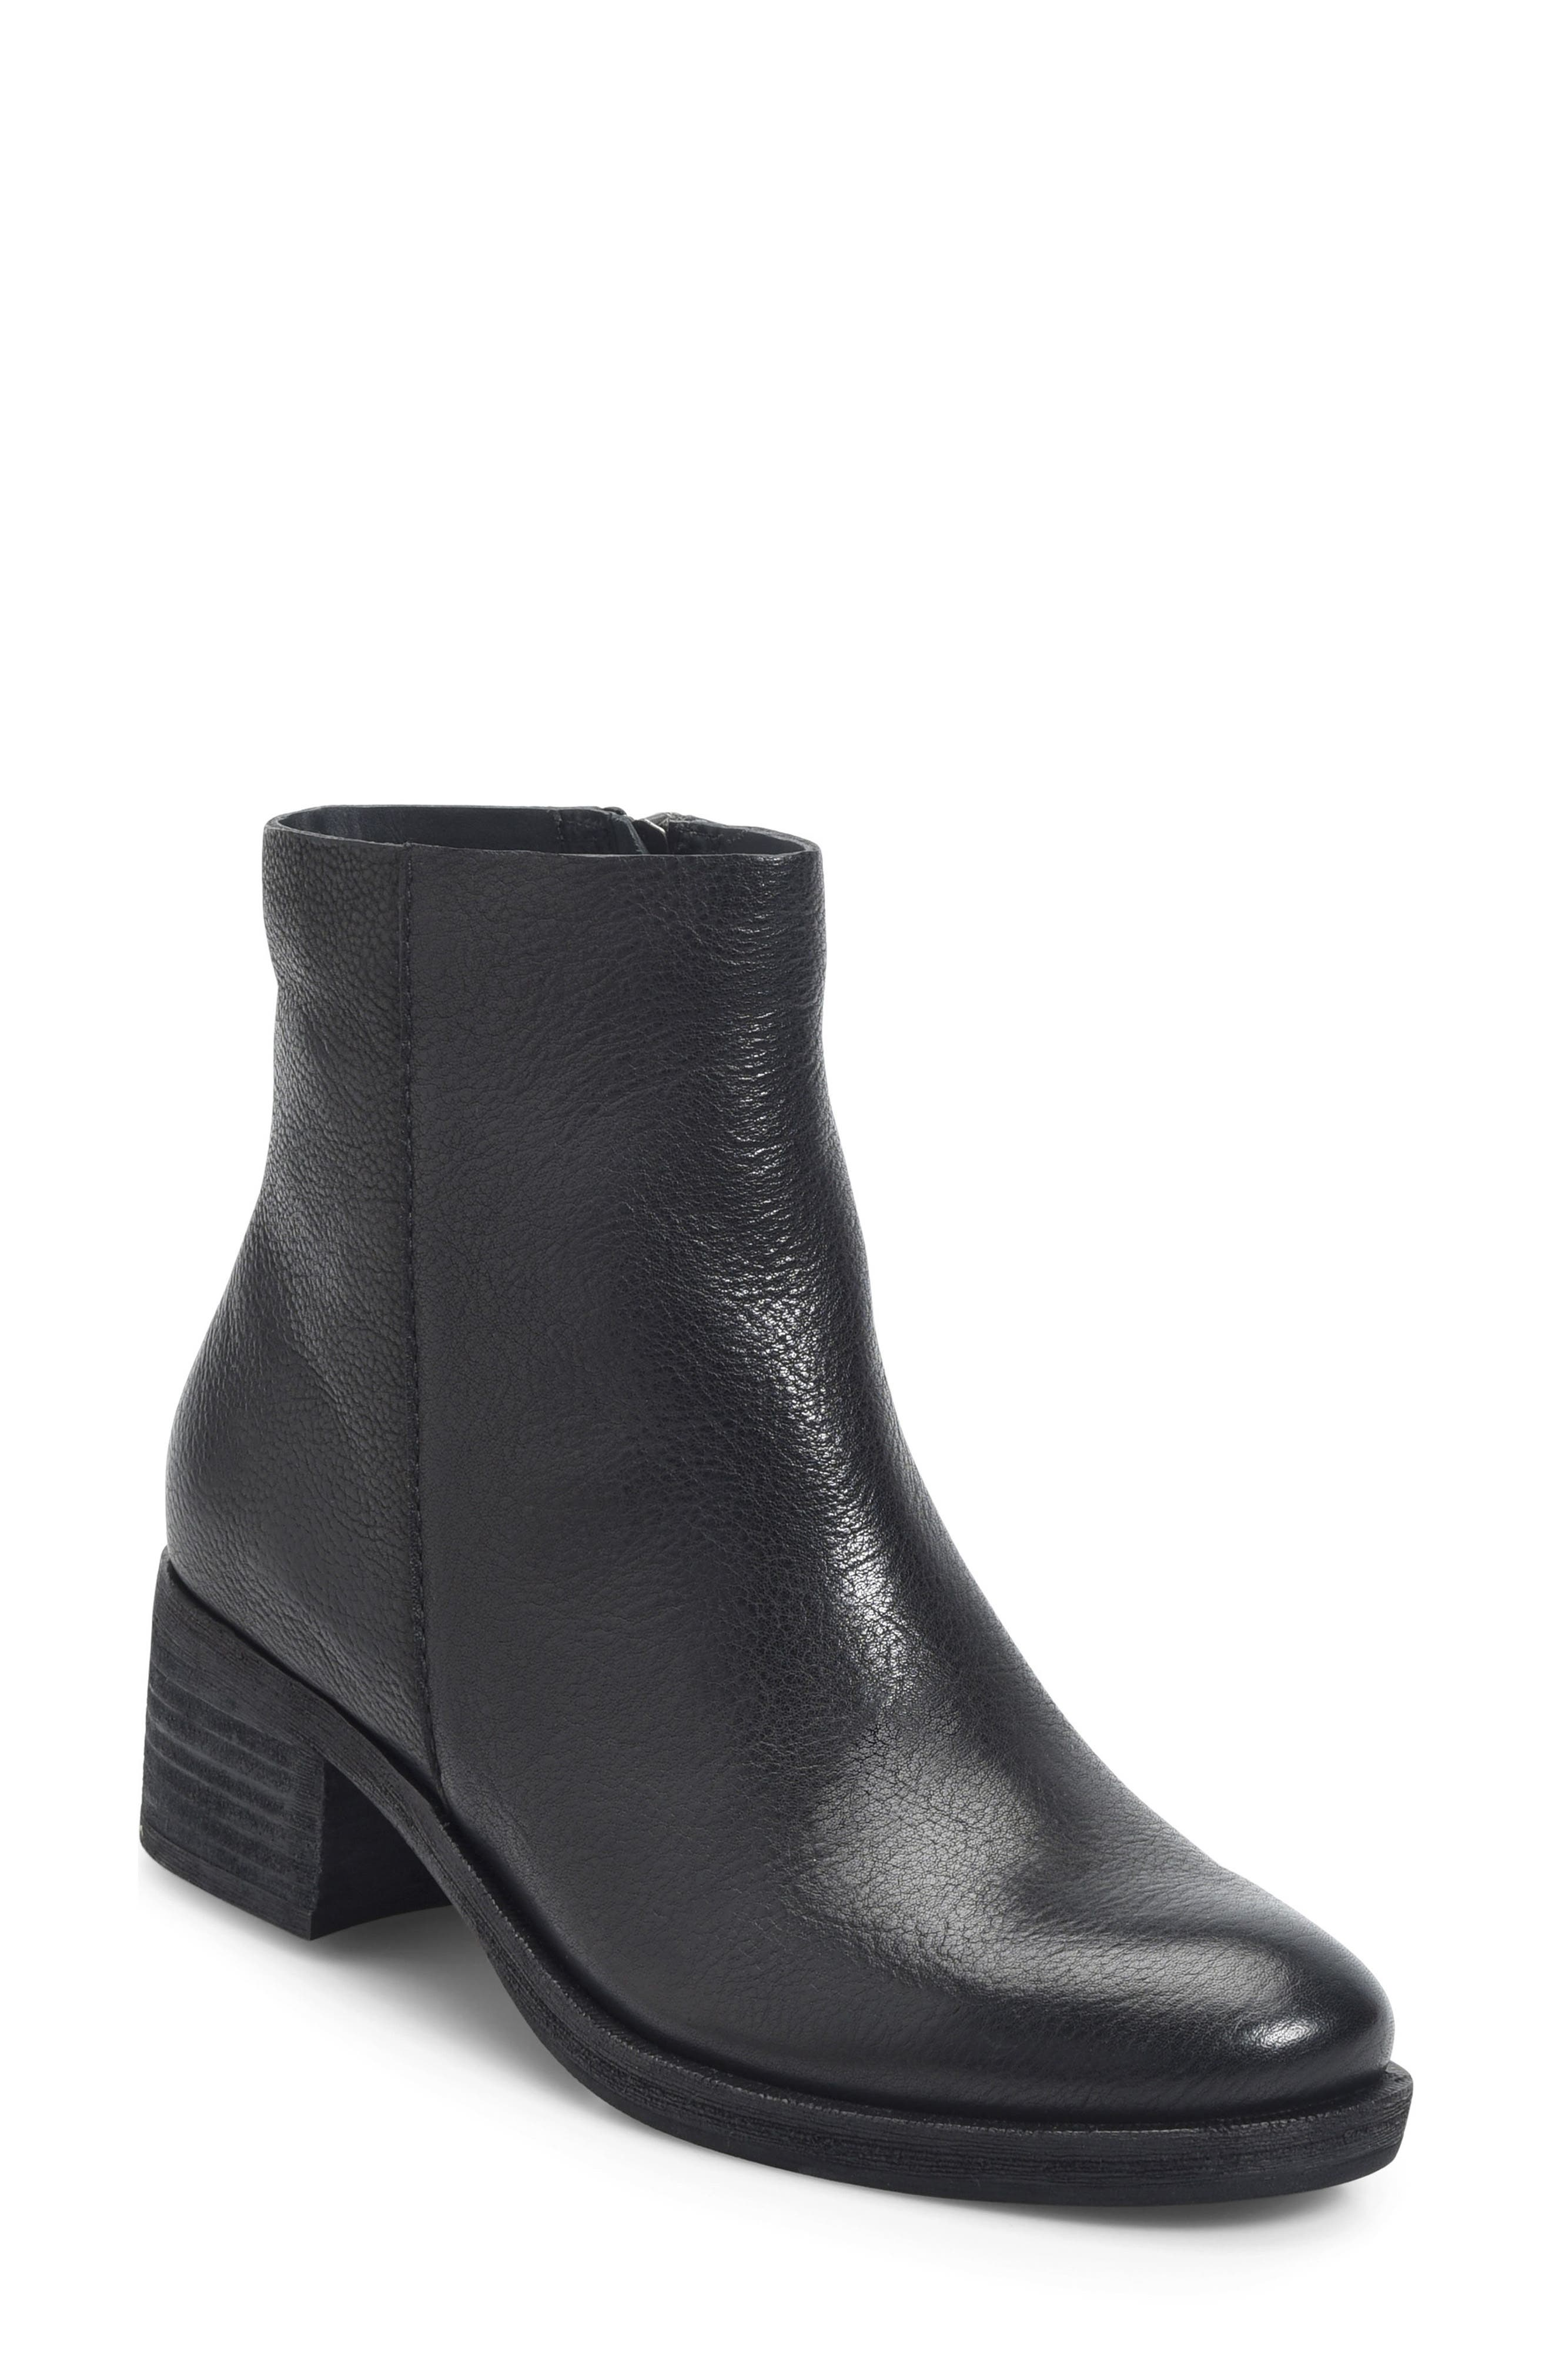 Mayten Bootie,                         Main,                         color, Black Leather